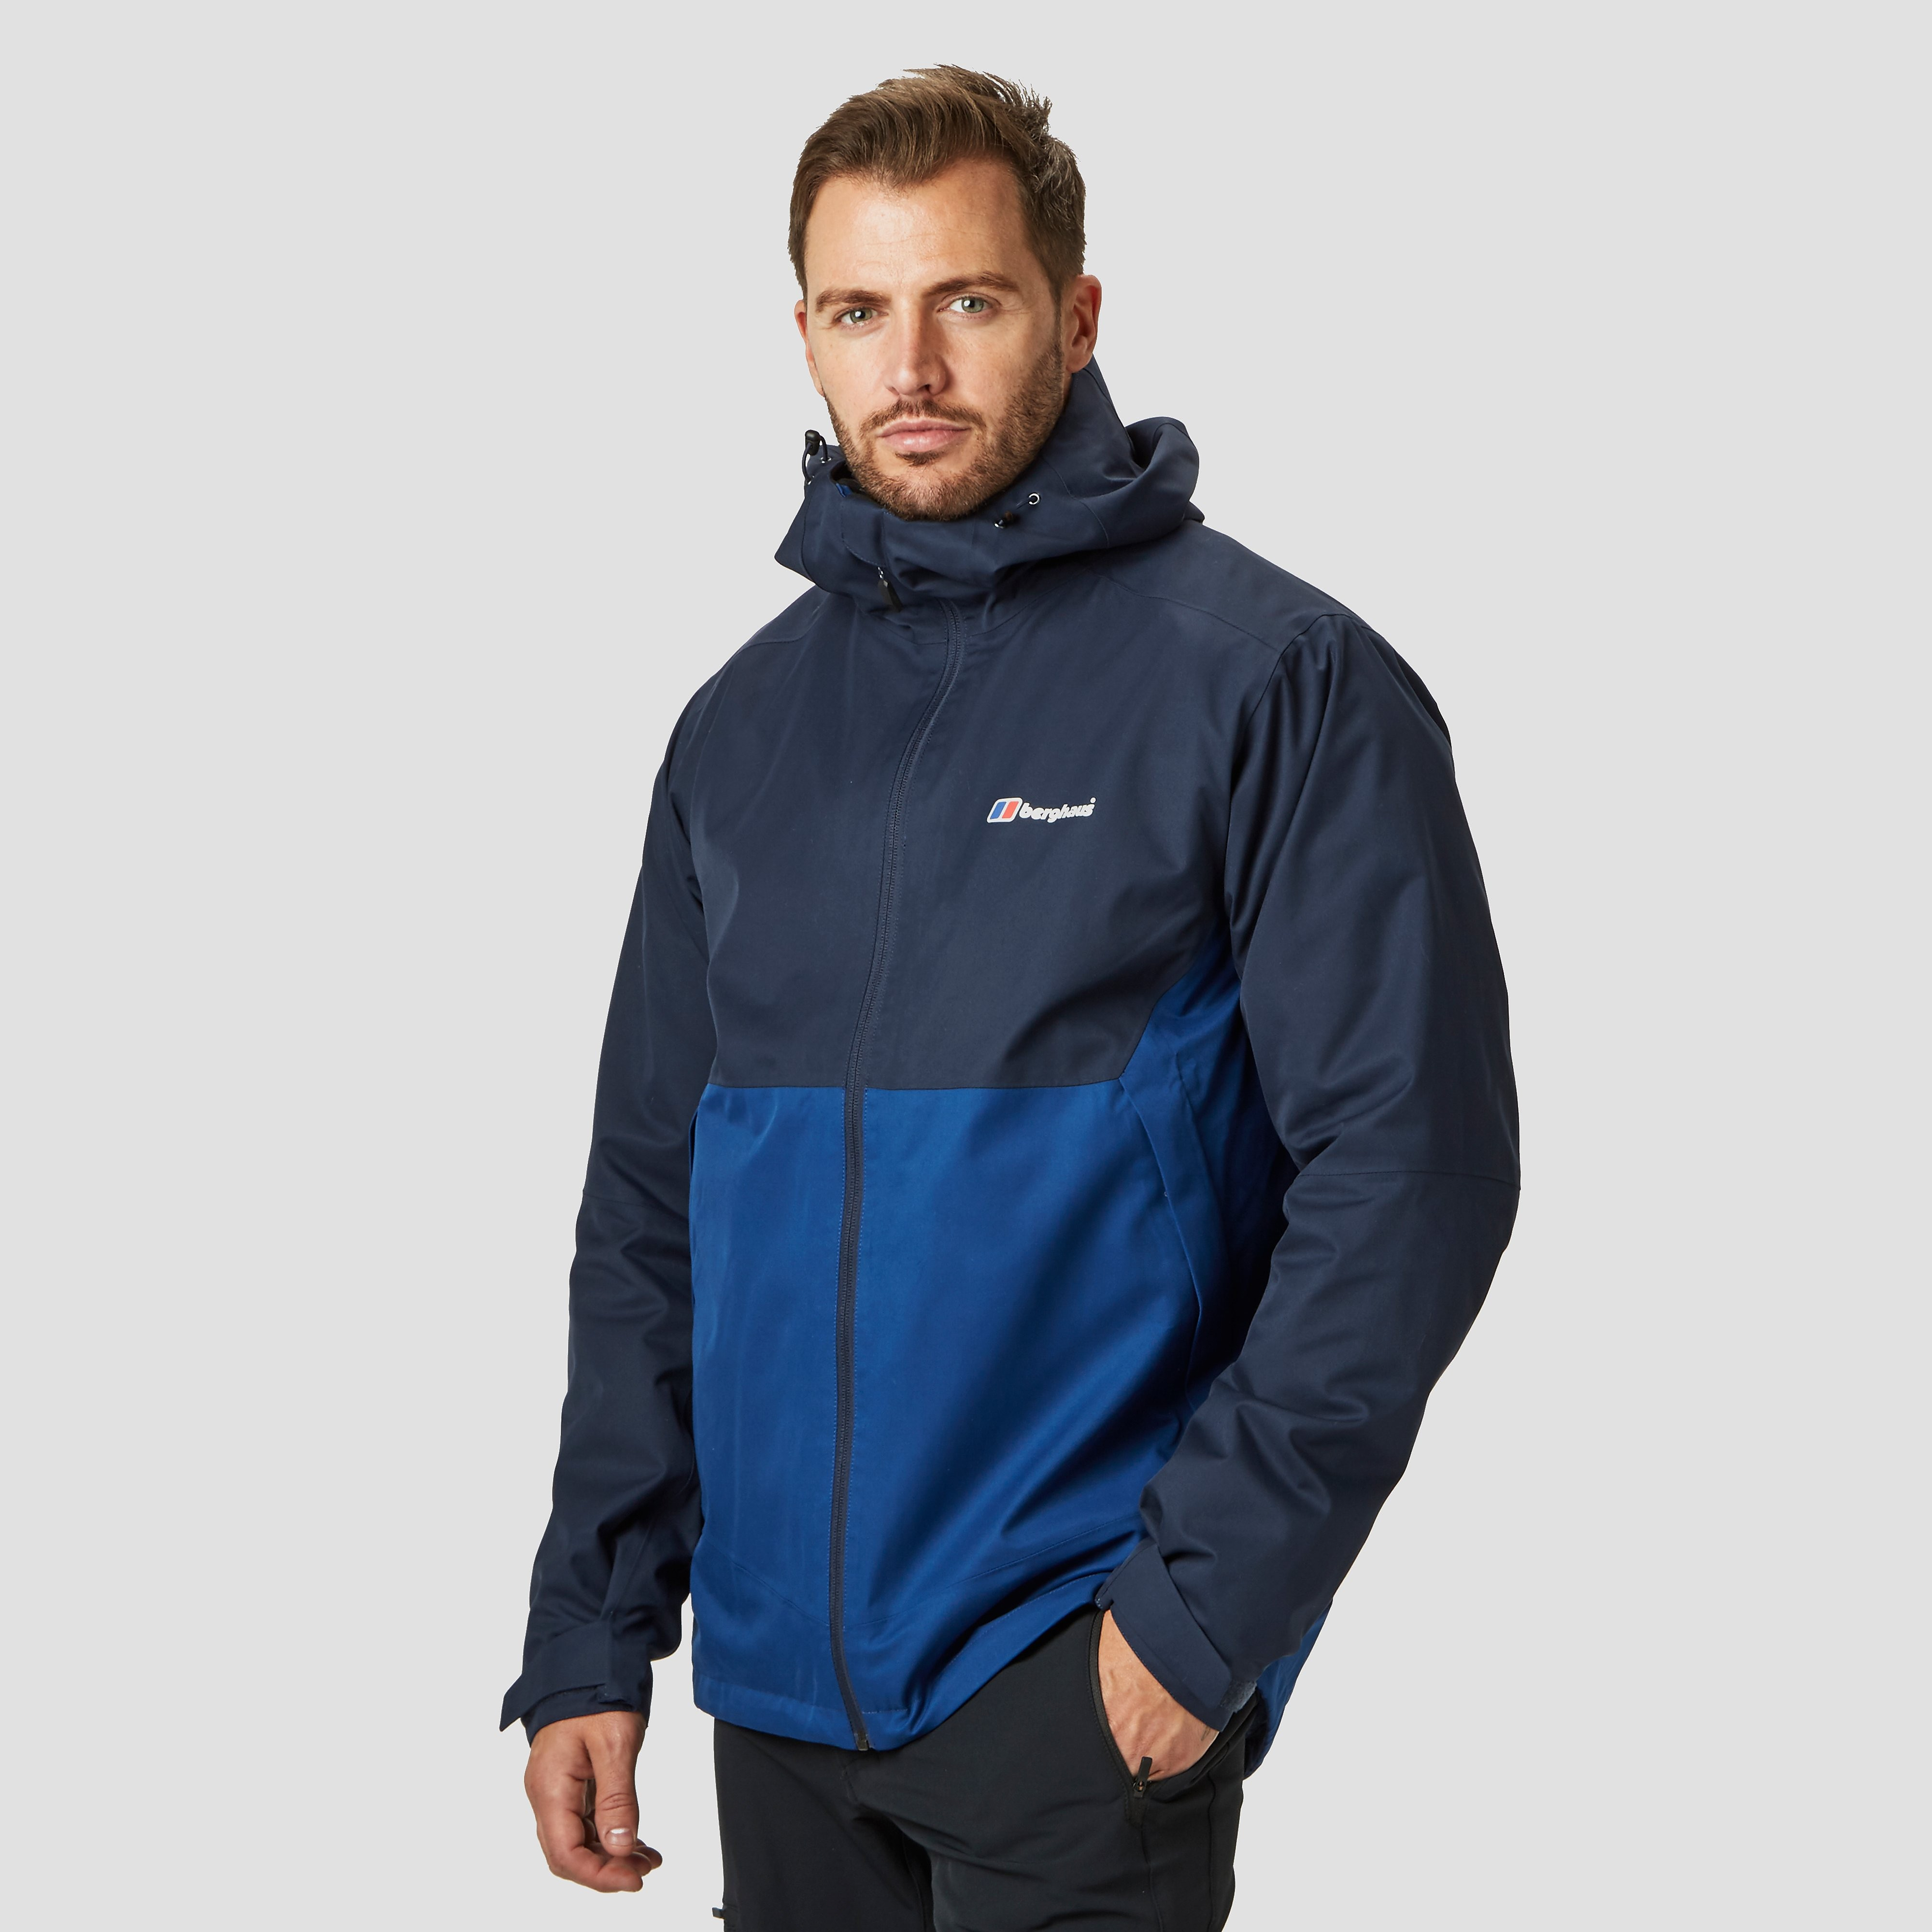 Berghaus Fellmaster GORE-TEX Men's Jacket